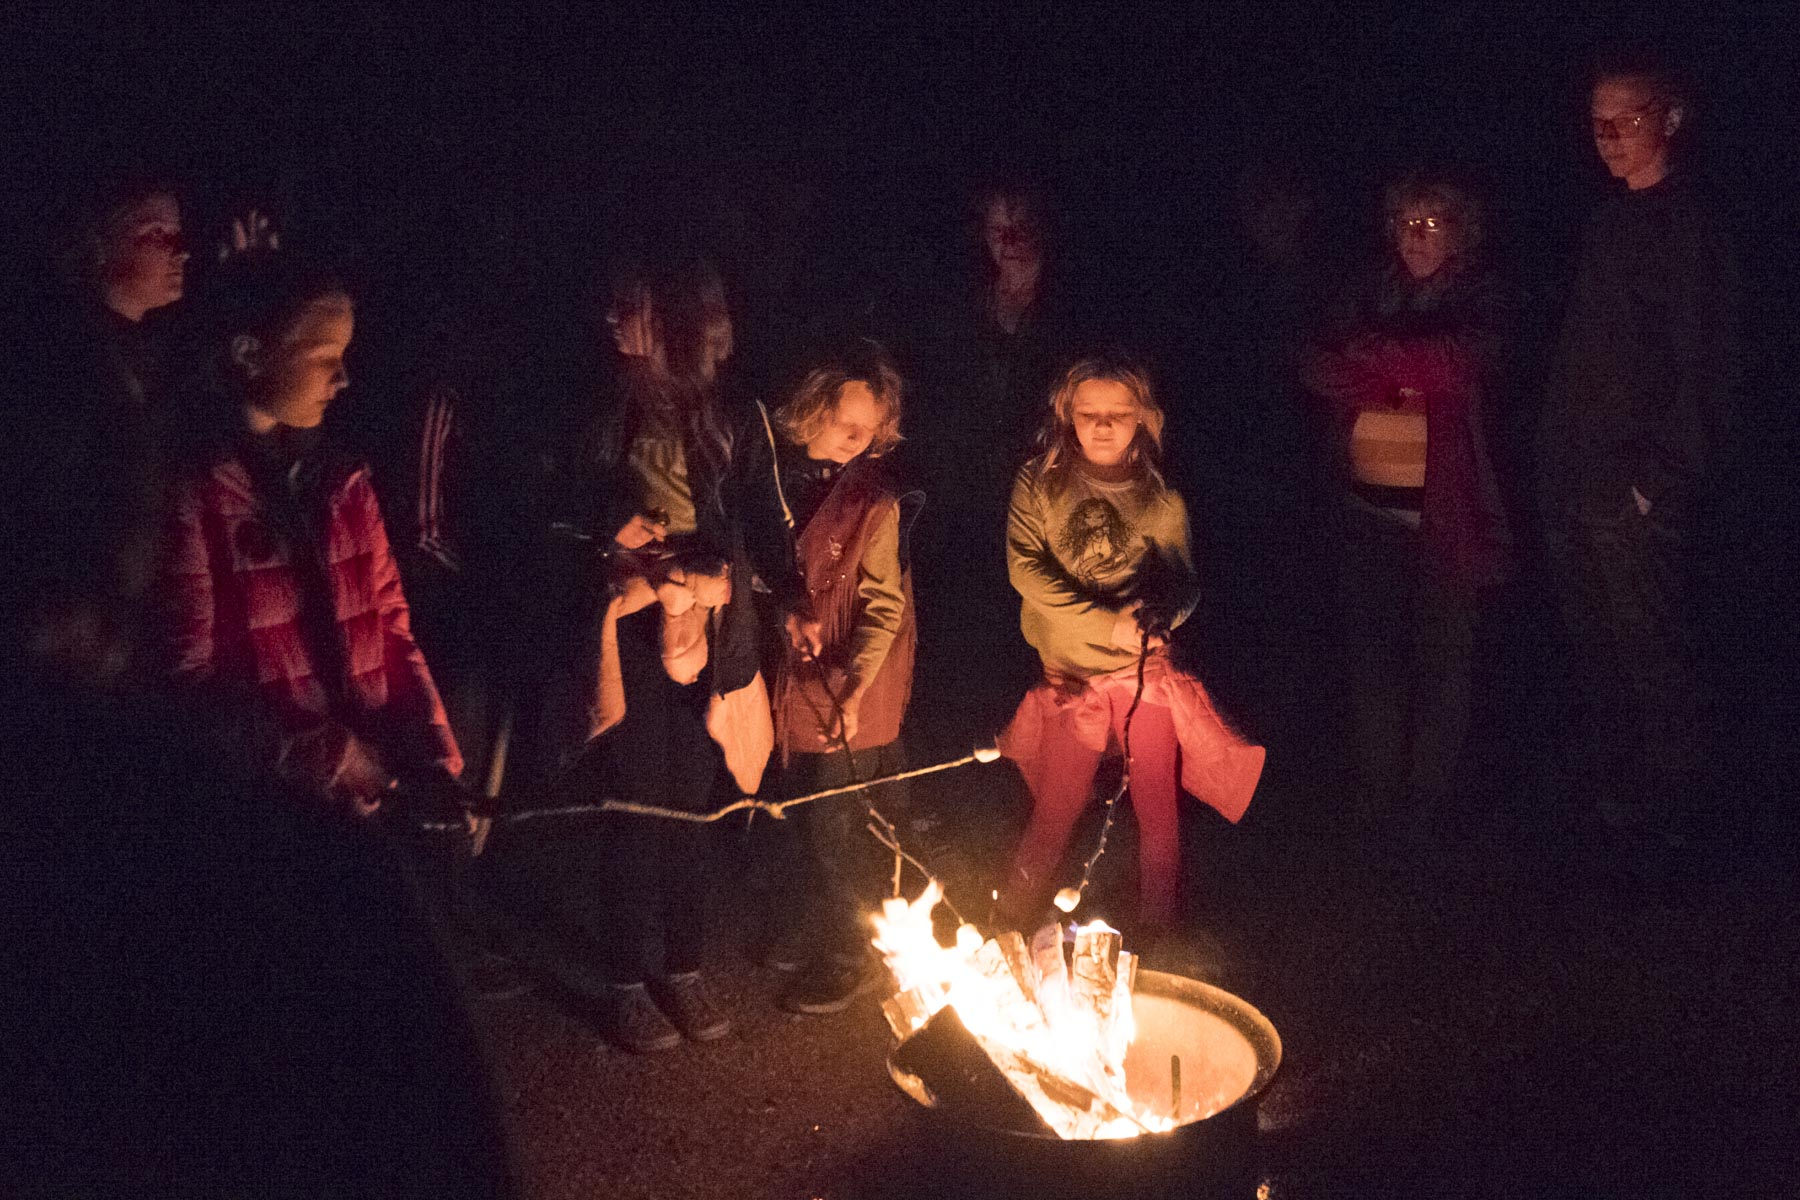 During the hike, kids roasted marshmallows on a camp fire.